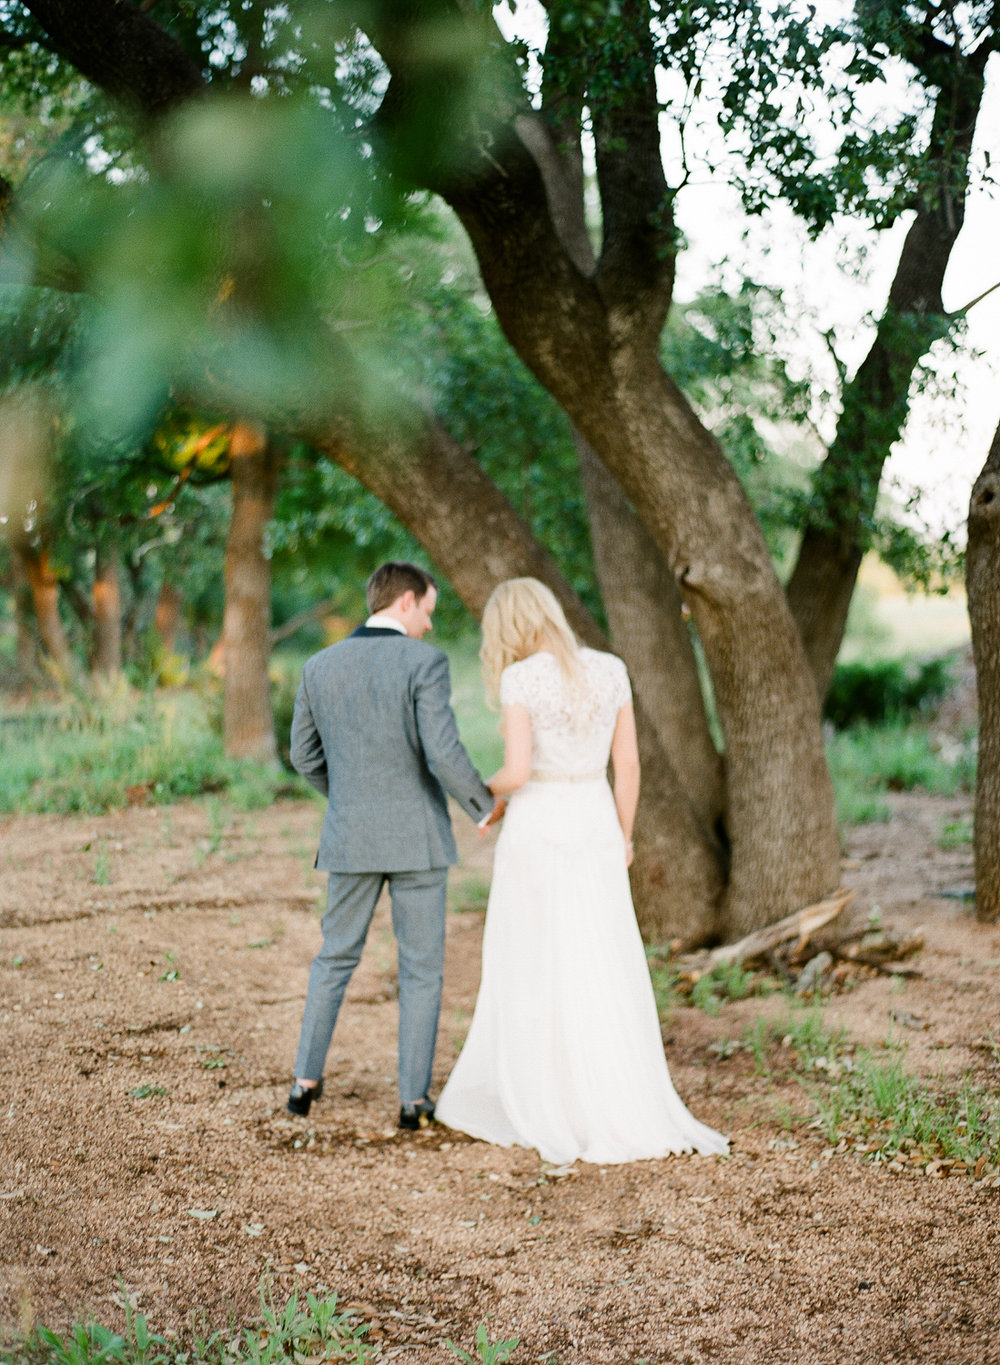 PROSPECT_HOUSE_WEDDING_AUSTIN_TX_BY_MATTHEW_MOORE_PHOTOGRAPHY_00588.jpg